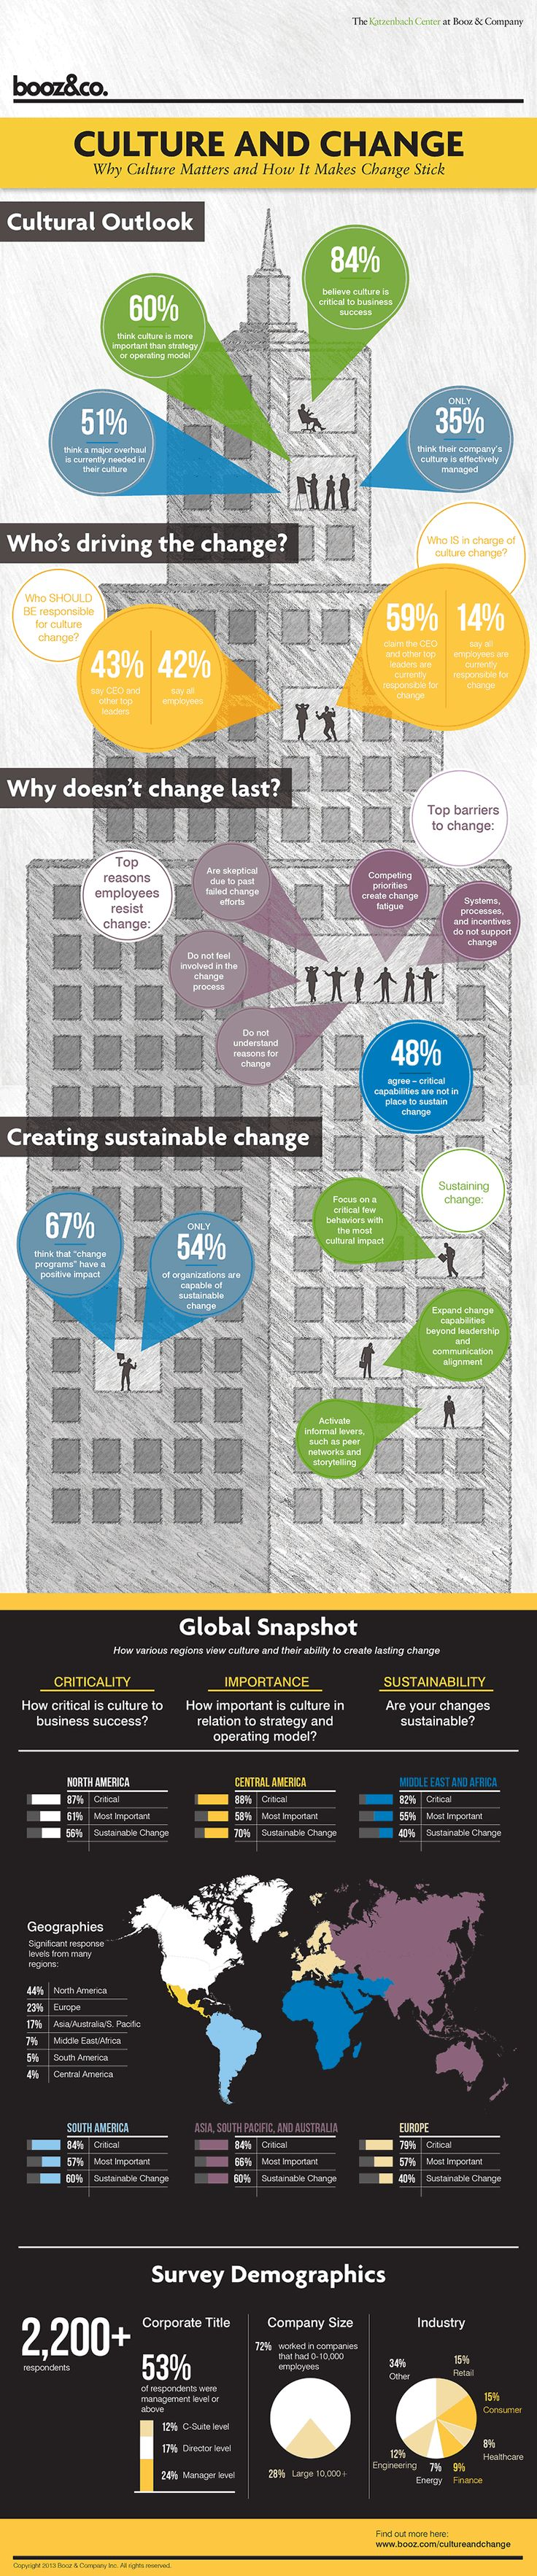 Who's driving the 'culture' of your organisation? How can you change it? Results from Booz & Co's 2013 Culture and Change Management survey.